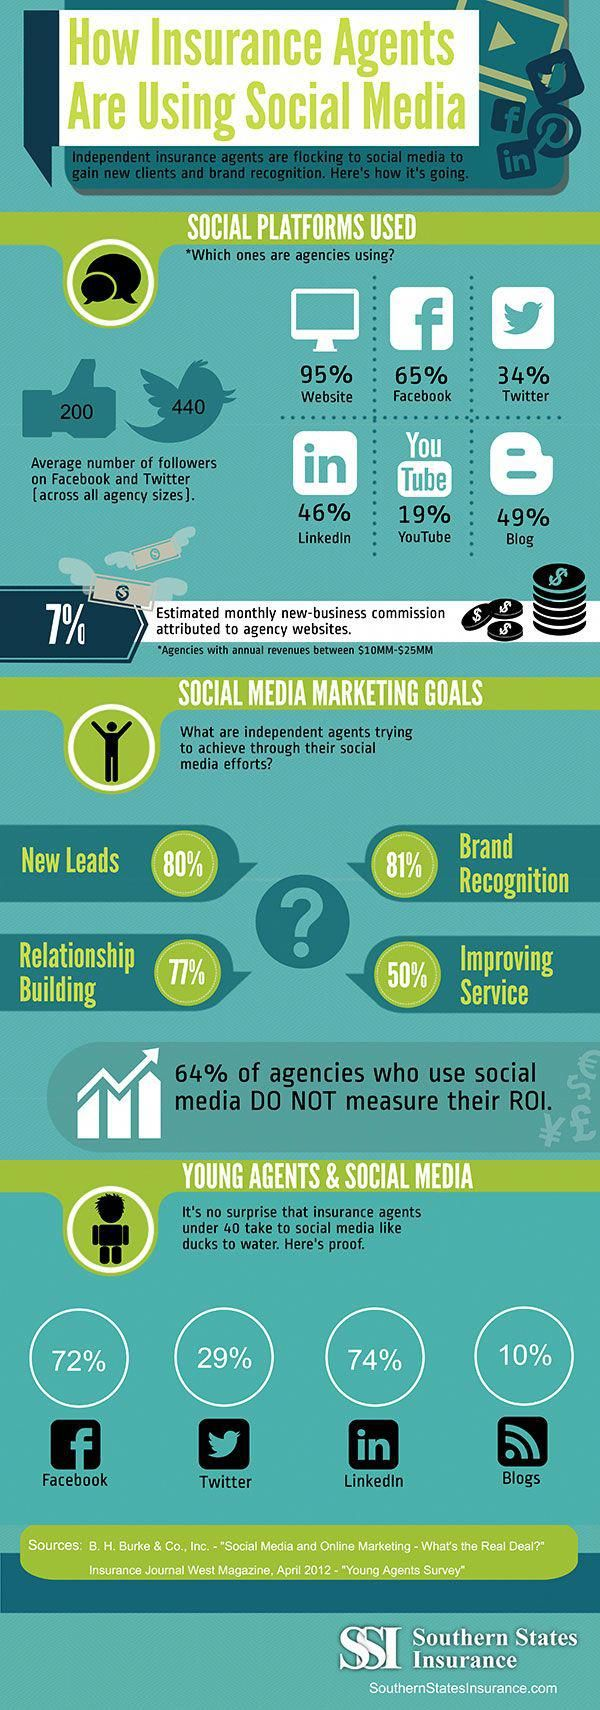 How Insurance Agents Are Using Social Media Life Insurance